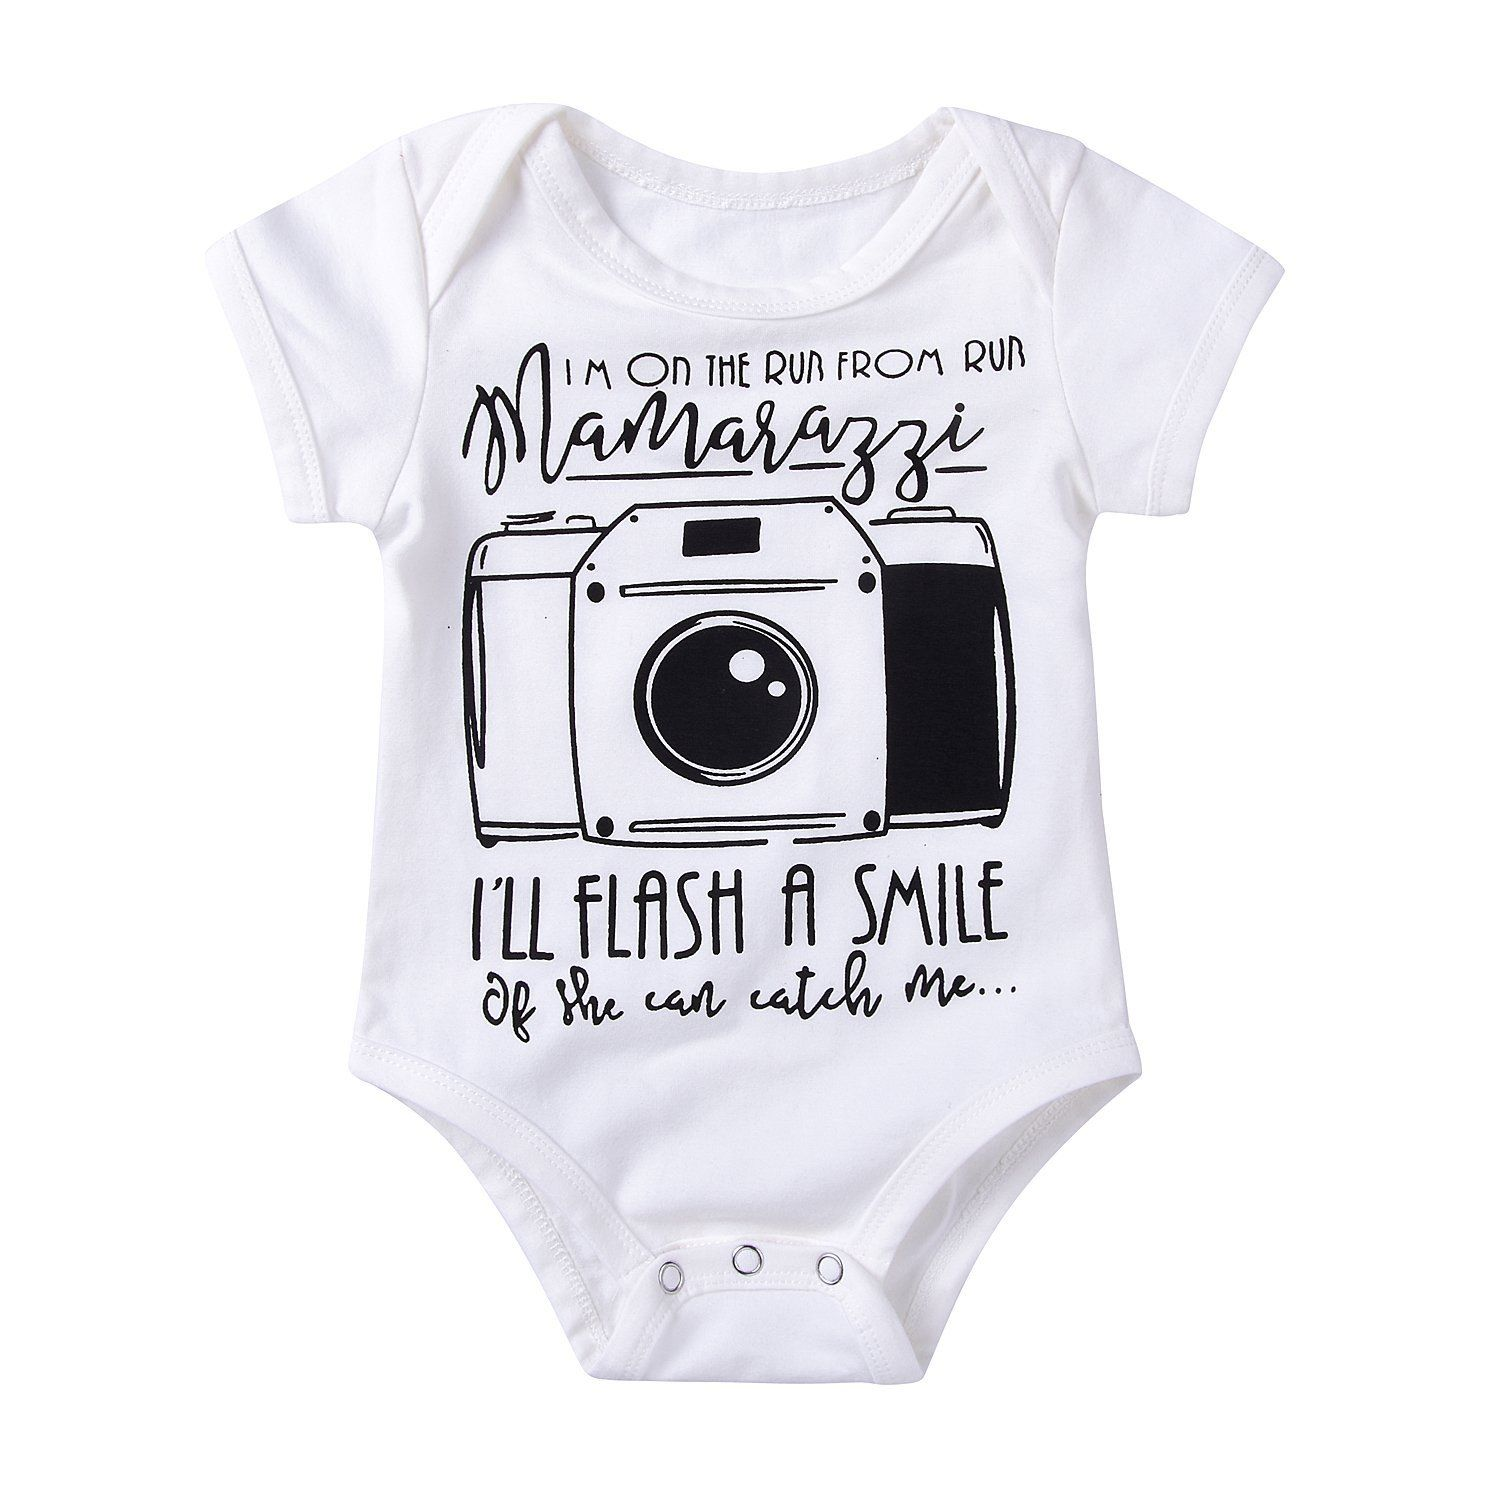 Royal Flush Fashion Newborn Baby Short Sleeve Bodysuit Romper Infant Summer Clothing